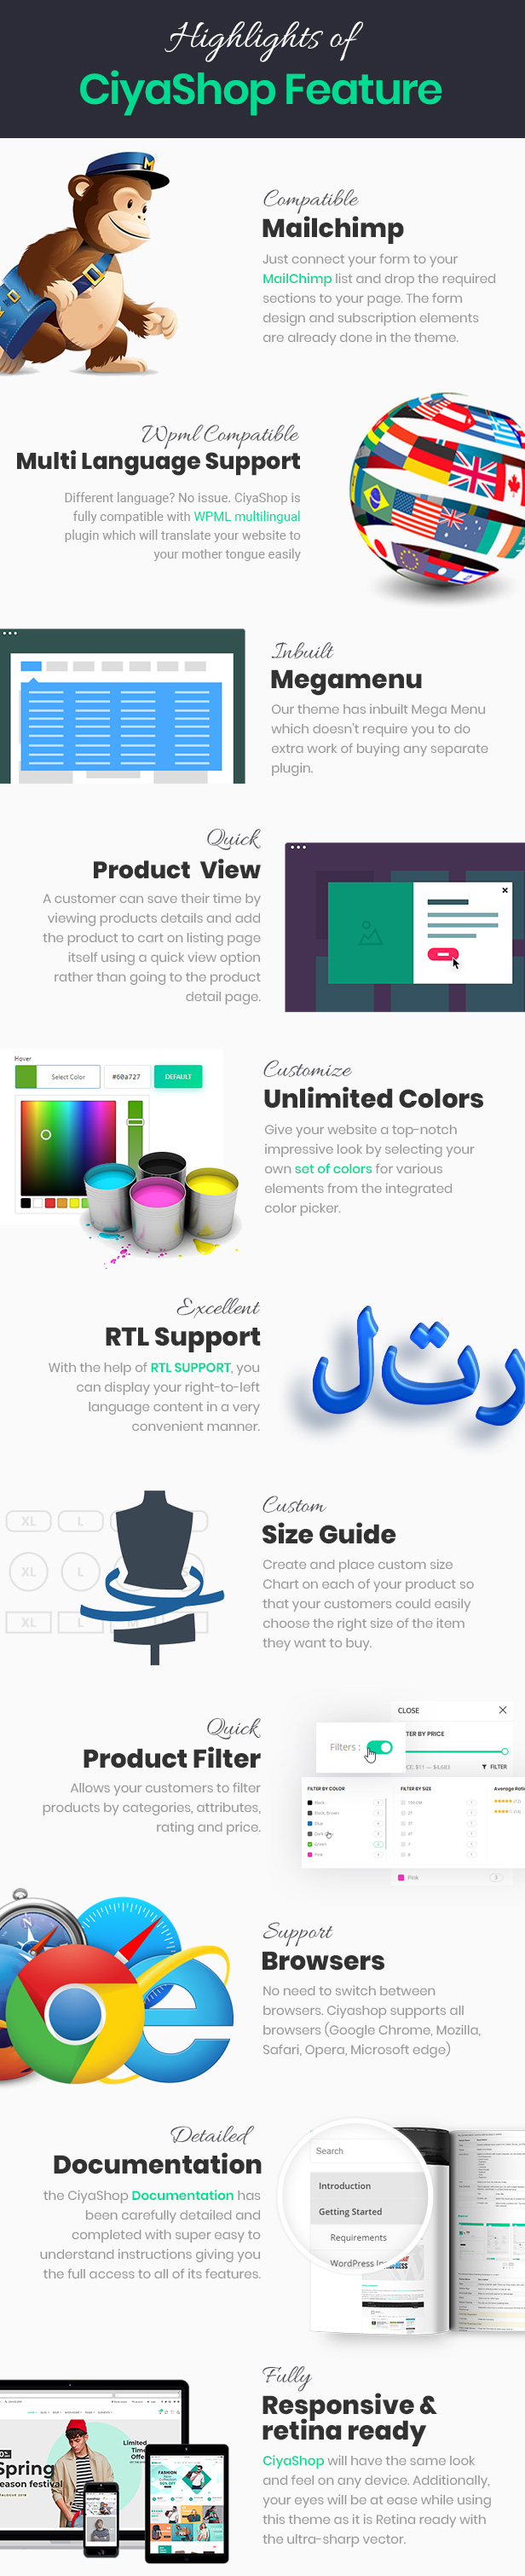 CiyaShop - Responsive Multi-Purpose WooCommerce WordPress Theme - 18